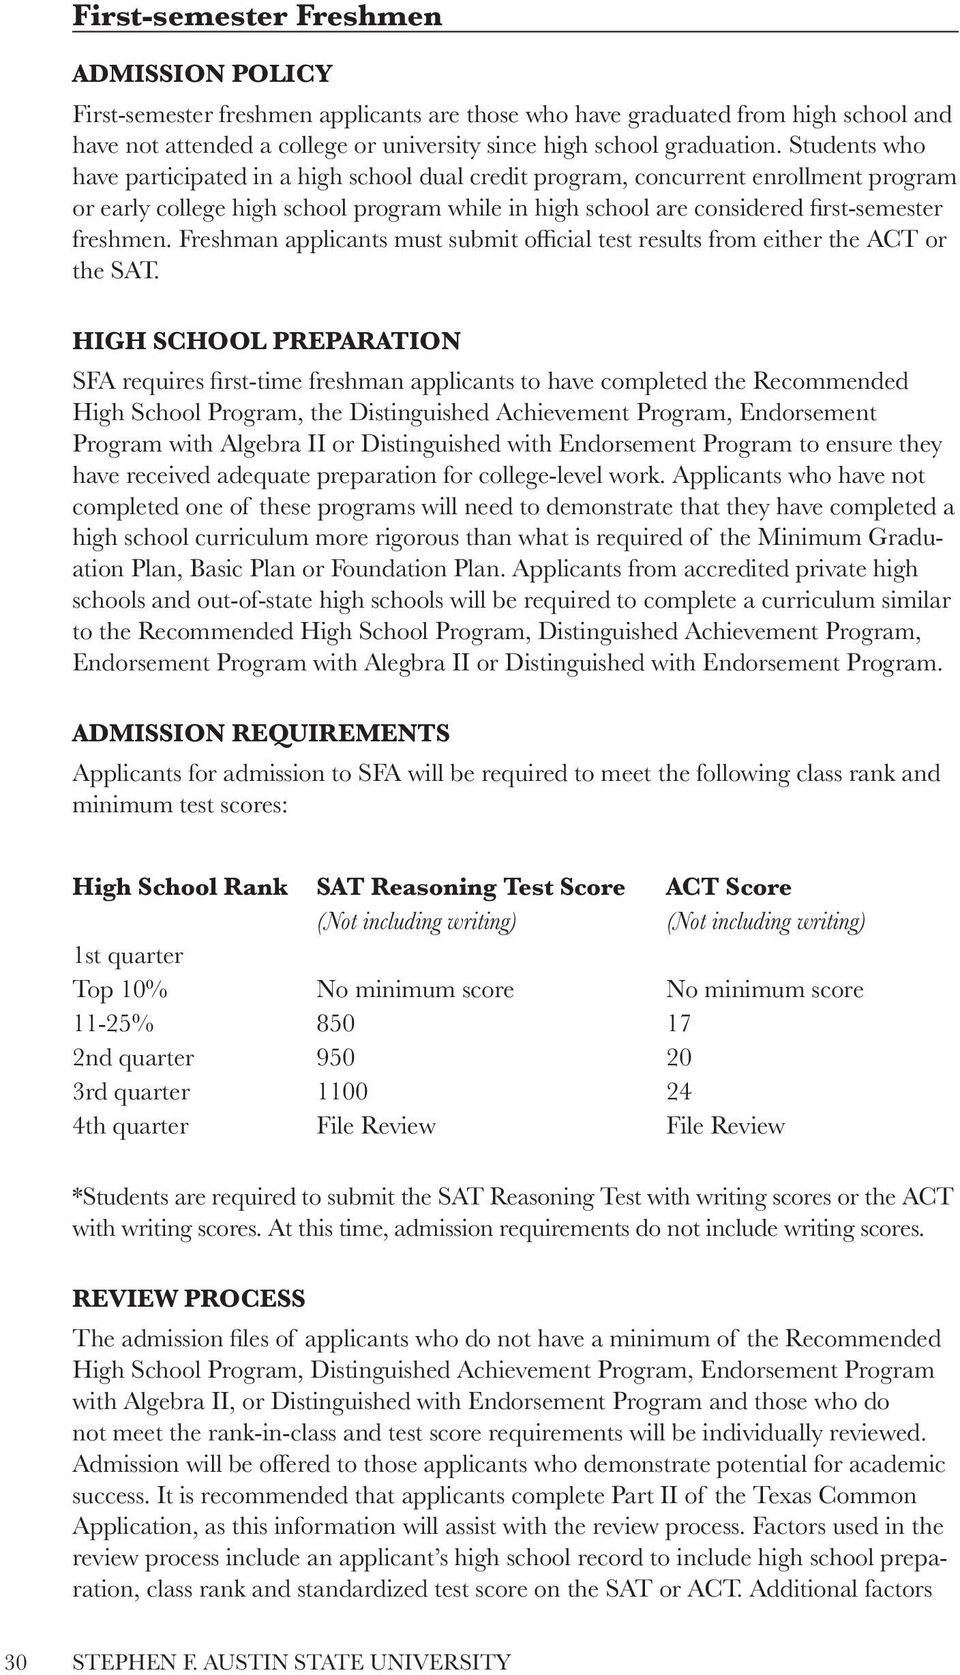 Freshman Applicants Must Submit Official Test Results From Either The Act  Or The Sat Office Of How To Calculate Gpa